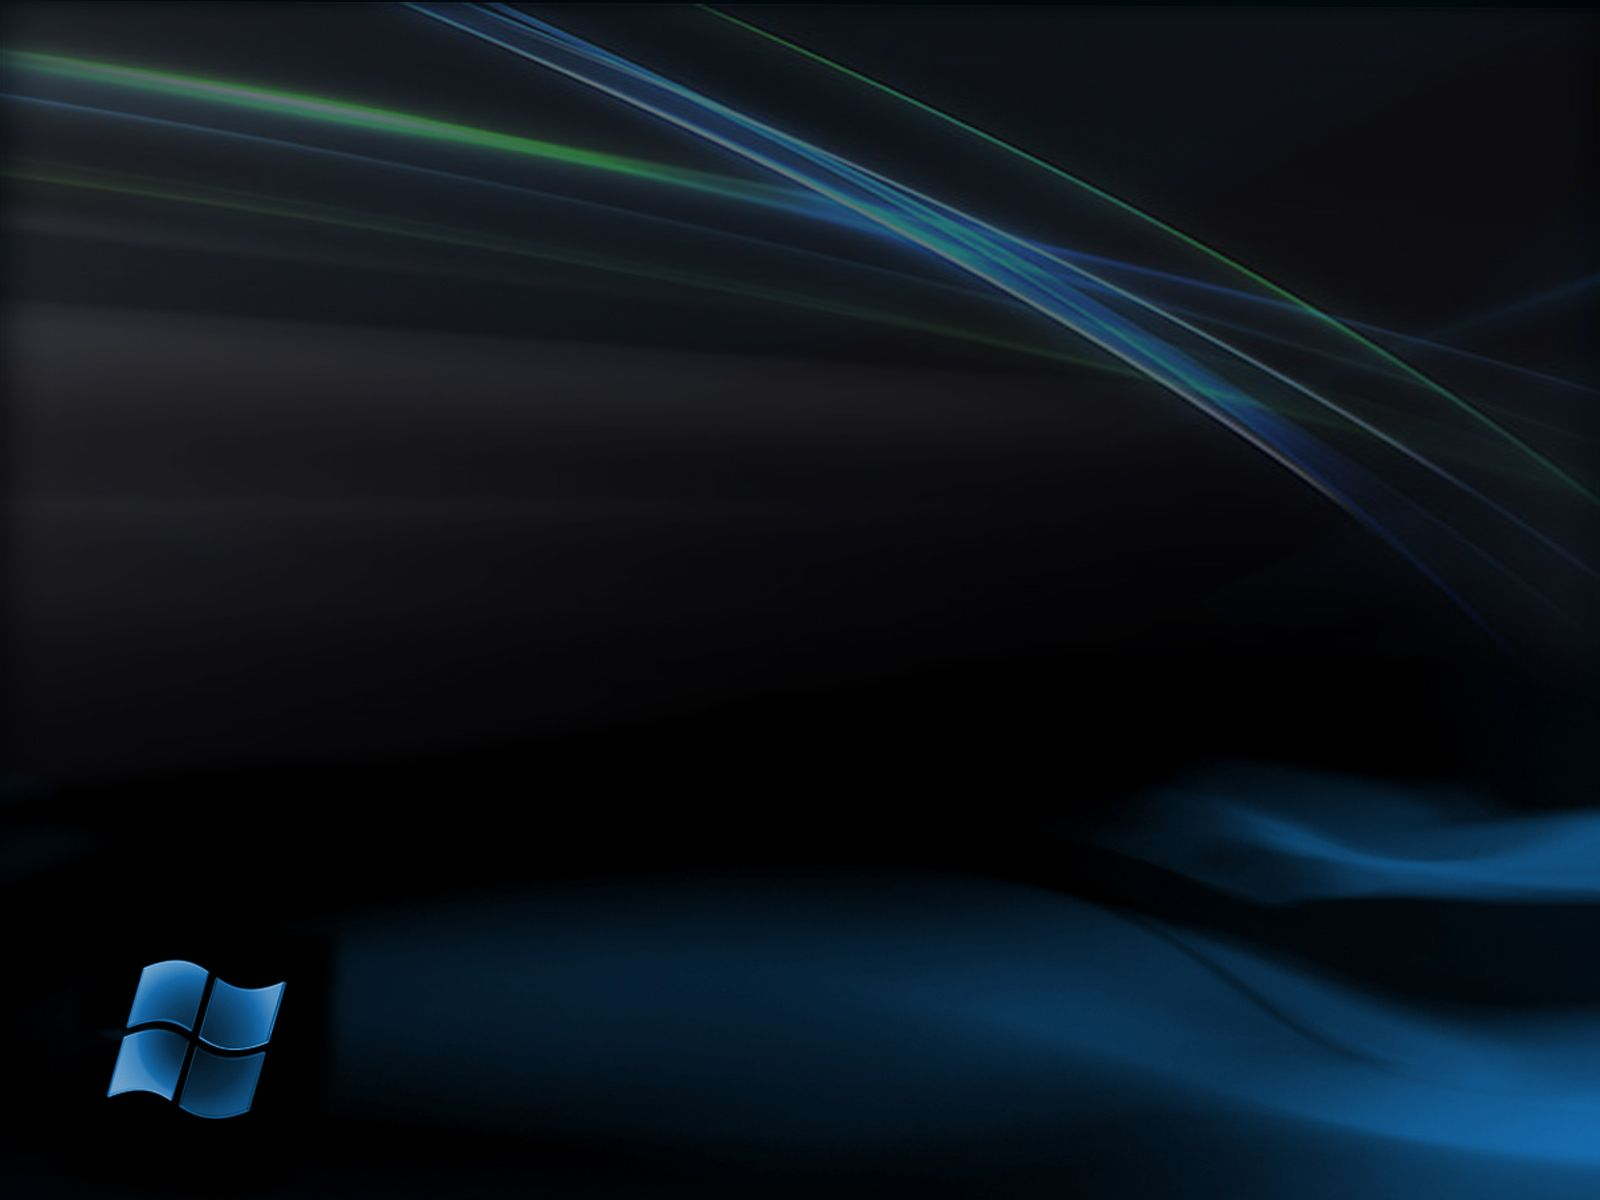 Papel De Parede Windows 7 Preto Wallpaper Para Download No